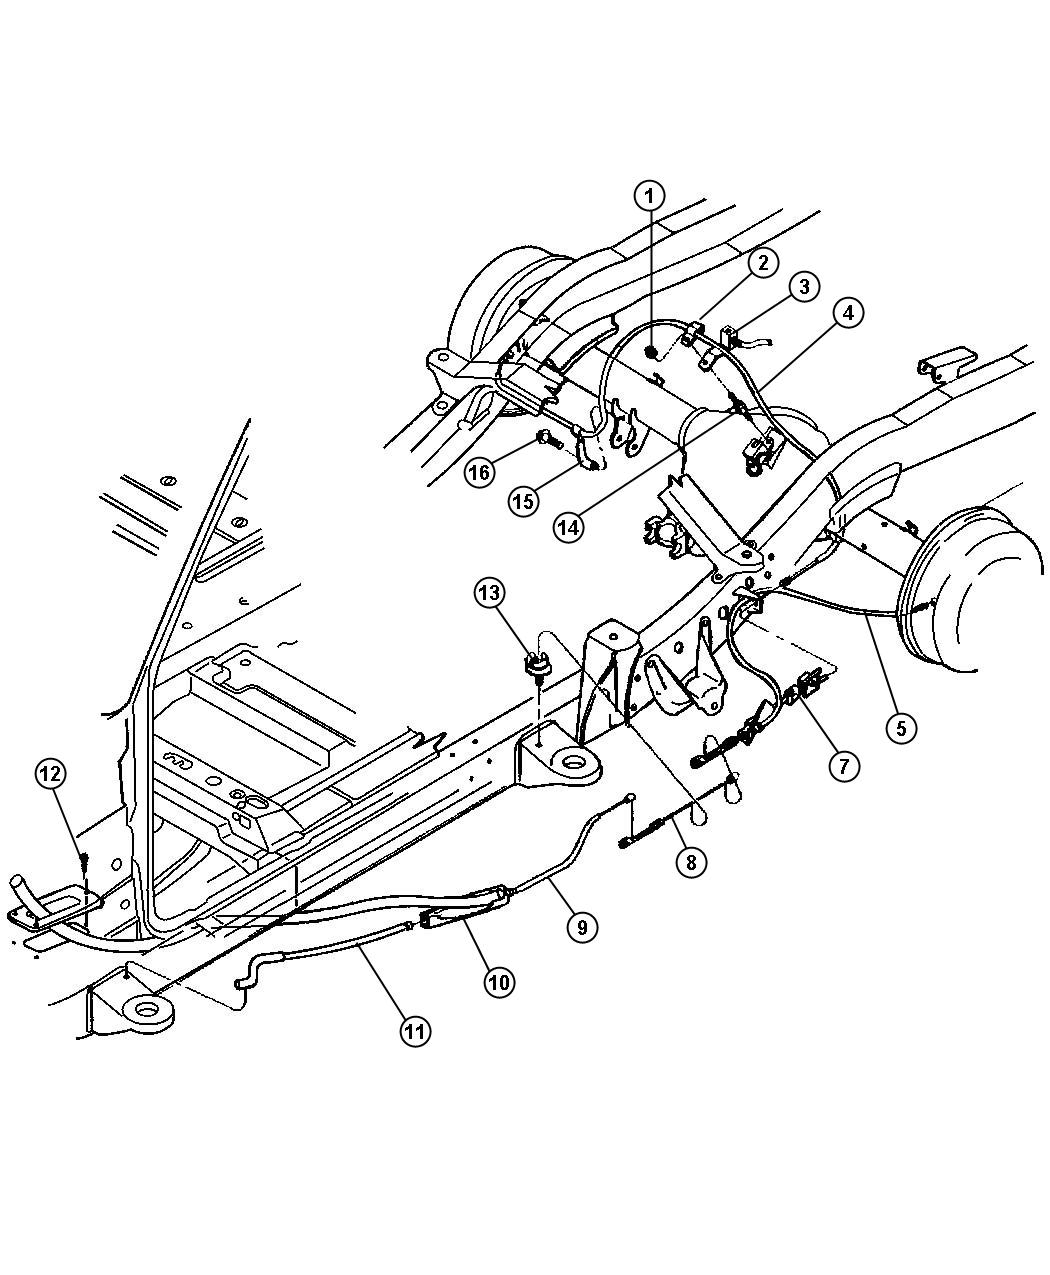 Service manual [Brake Change On A 1997 Dodge Dakota